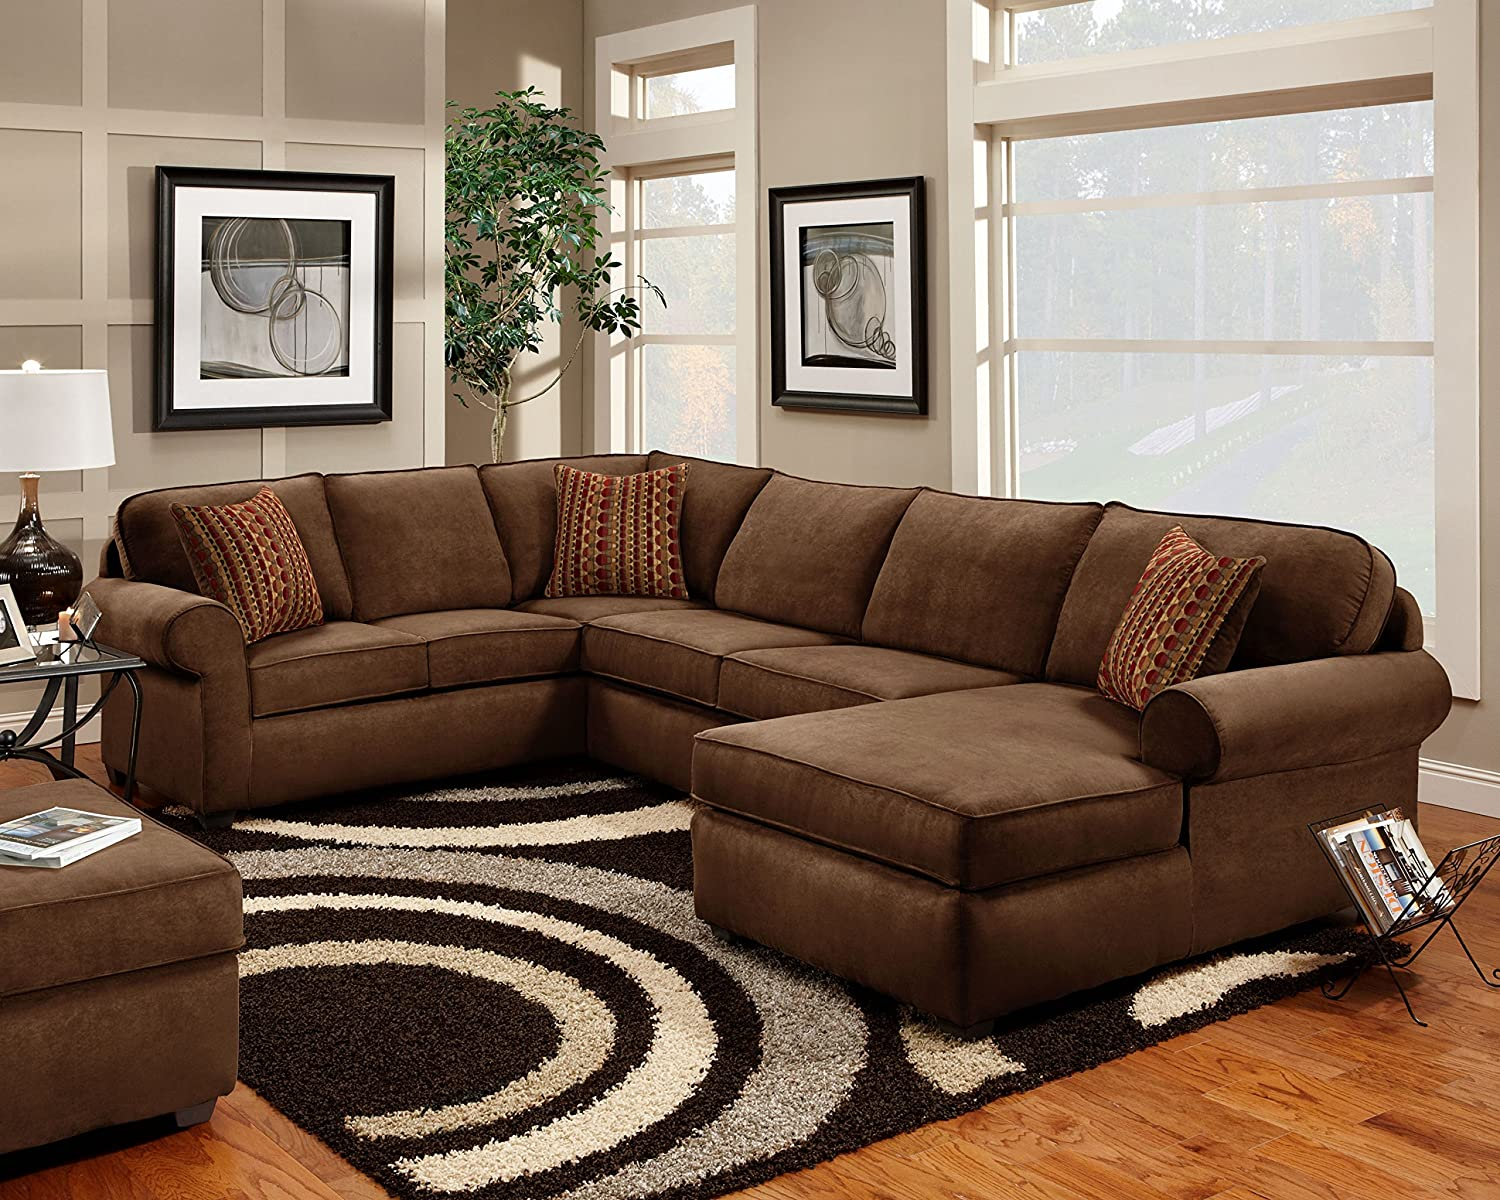 Chelsea Home Furniture Vera 3-Piece Sectional - Flatsuede Chocolate